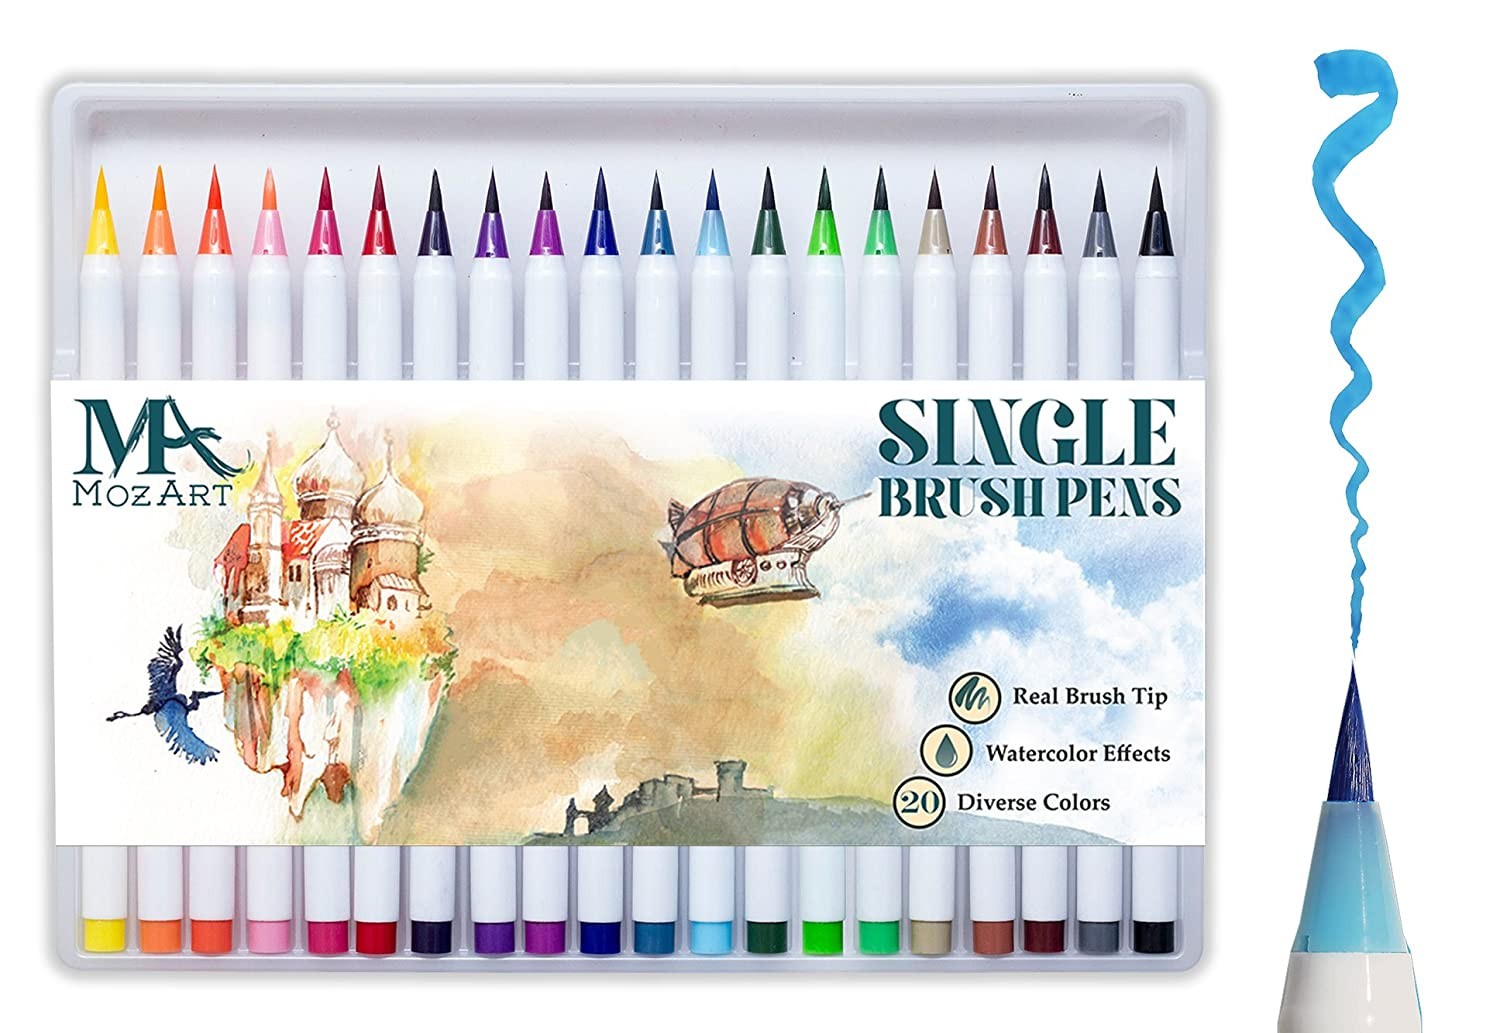 Pinselstift-Set – 12 Farben – weiche flexible Echtpinsel-Spitze, langlebig, Wasserfarben-Effekt, Aquarell – Ideal für Malbücher, Manga, Comic, Kalligrafie, duale Stärke - Brush Pen Set - MozArt Supplies